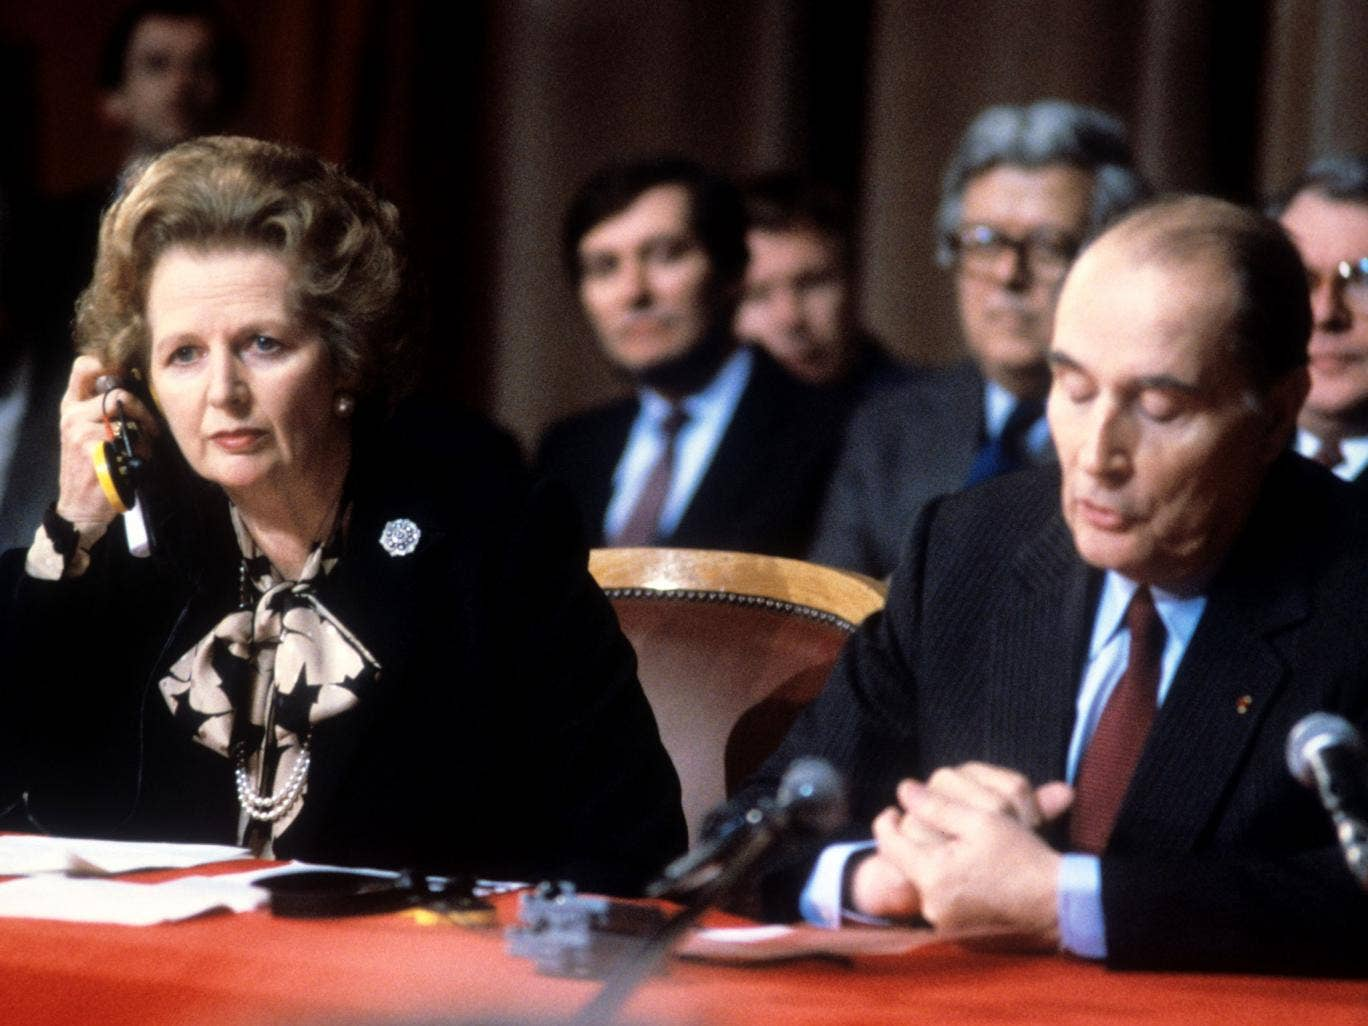 Margaret Thatcher in the 1980s with François Mitterrand